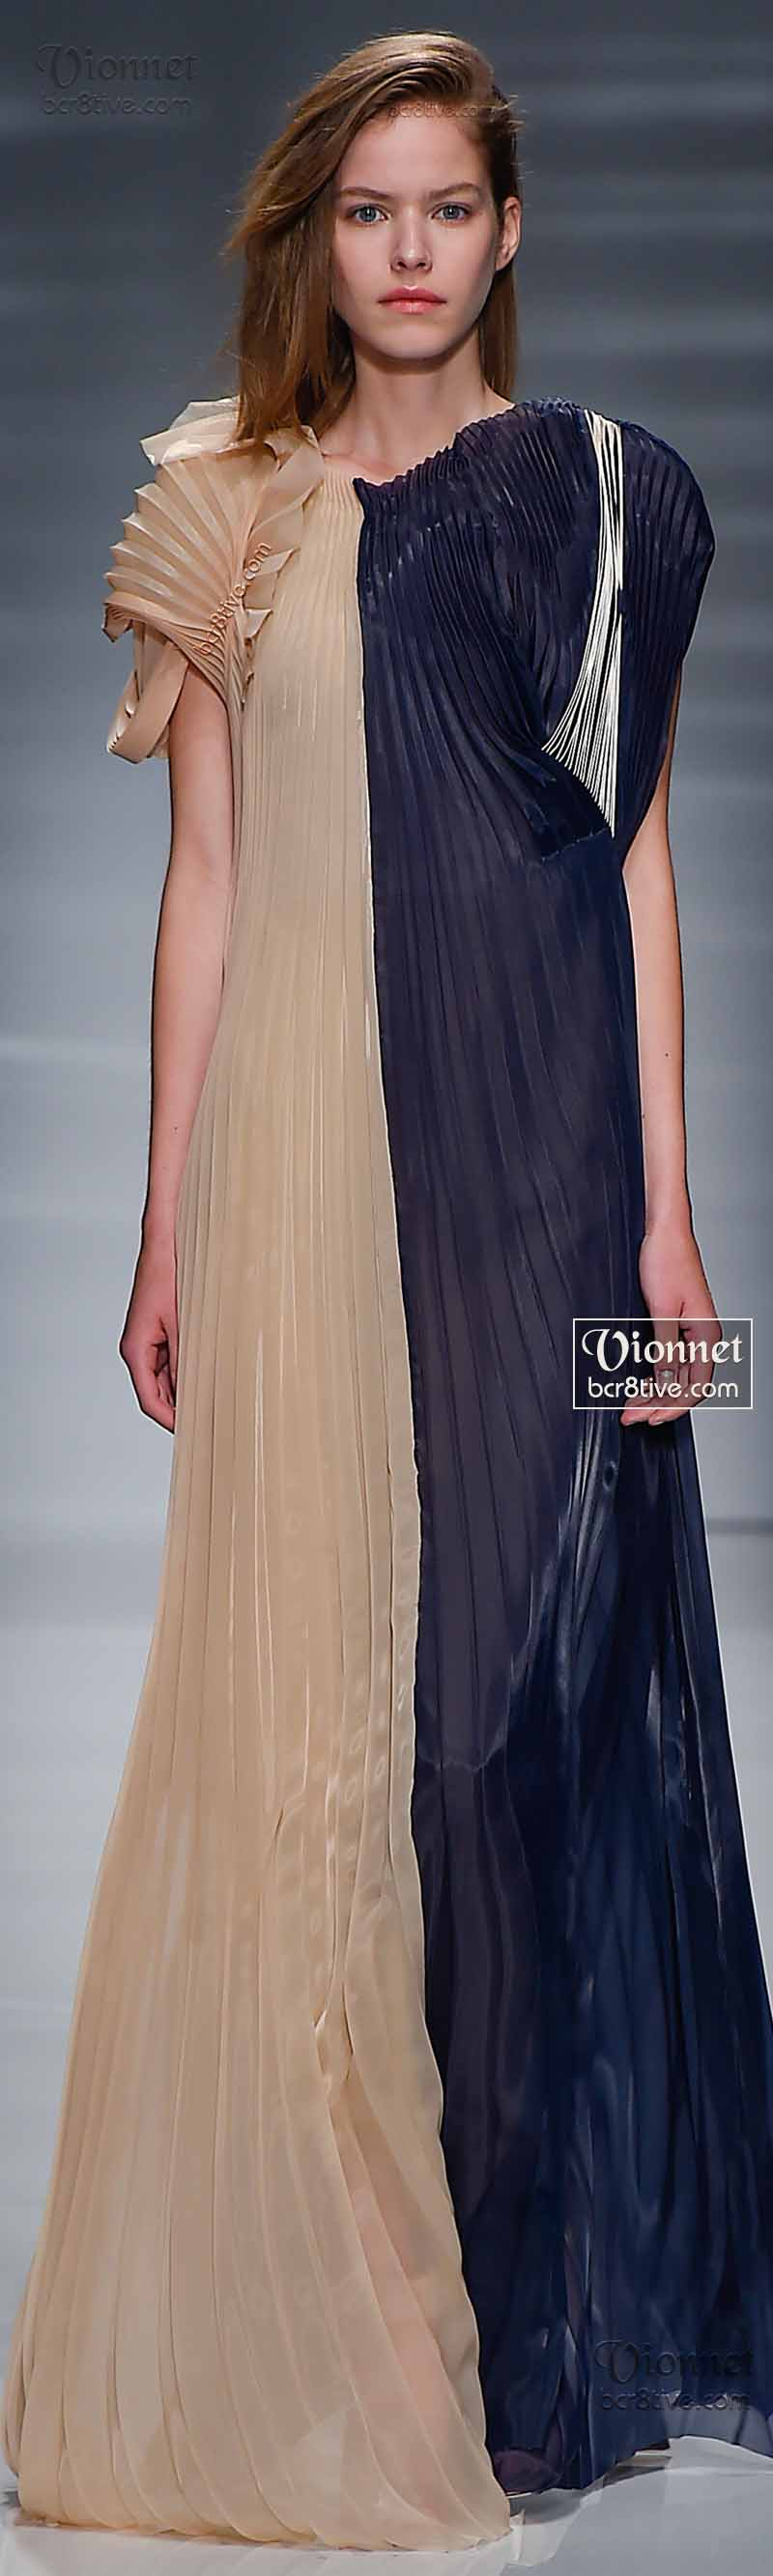 Vionnet Fall Winter 2014-15 Haute Couture